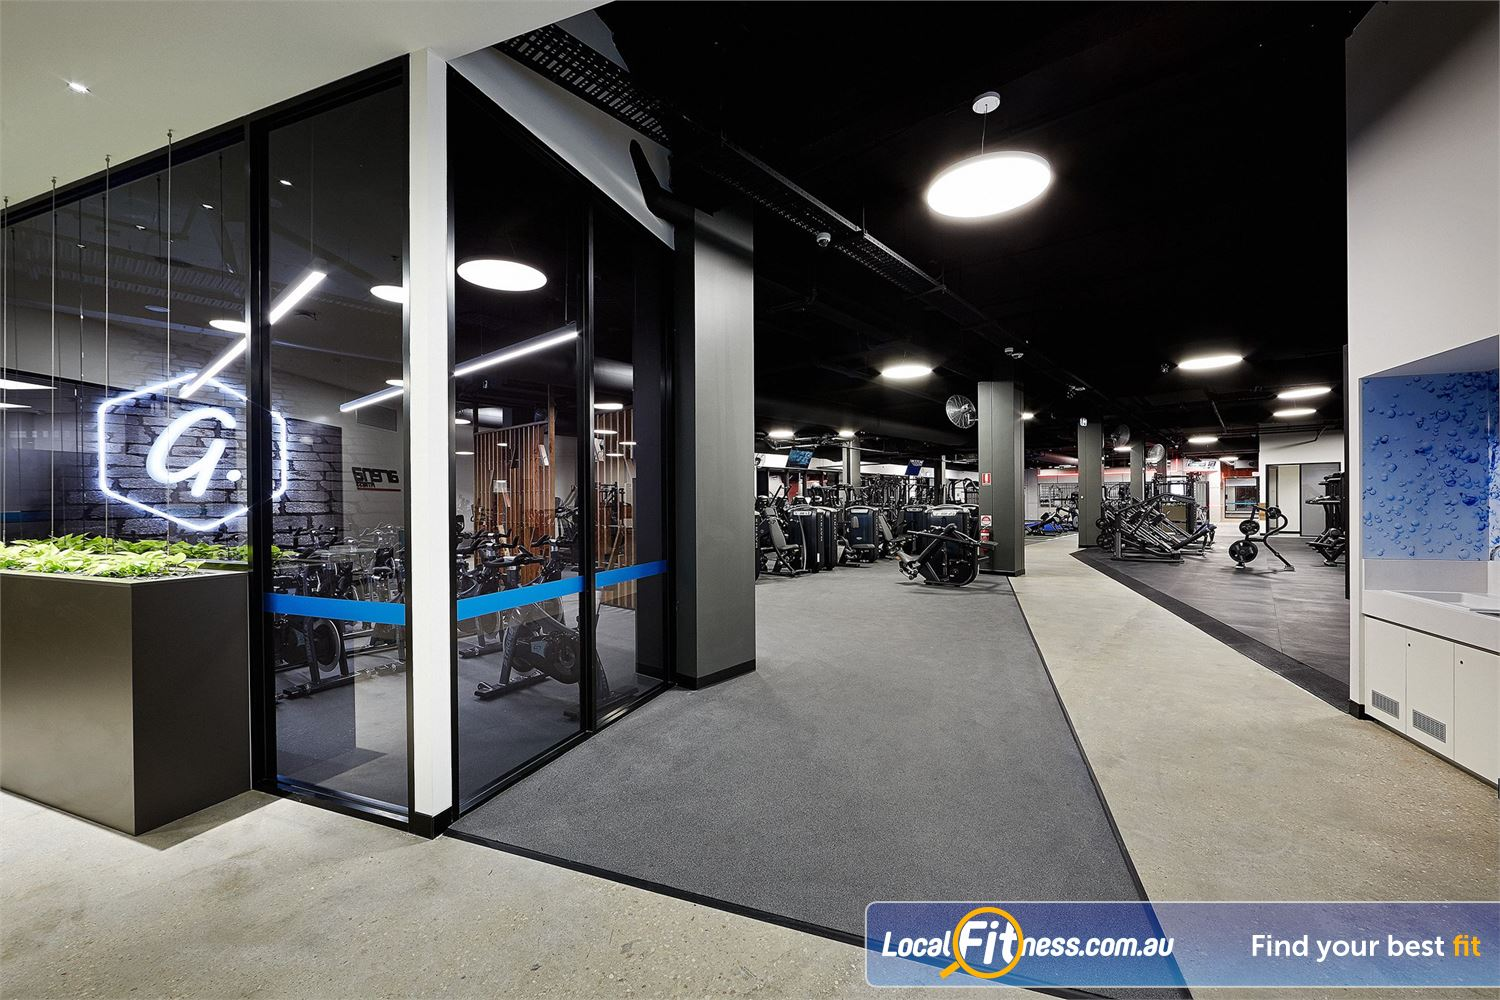 Goodlife Health Clubs Near Seaton North The spacious gym floor at Goodlife West Lakes 24/7.